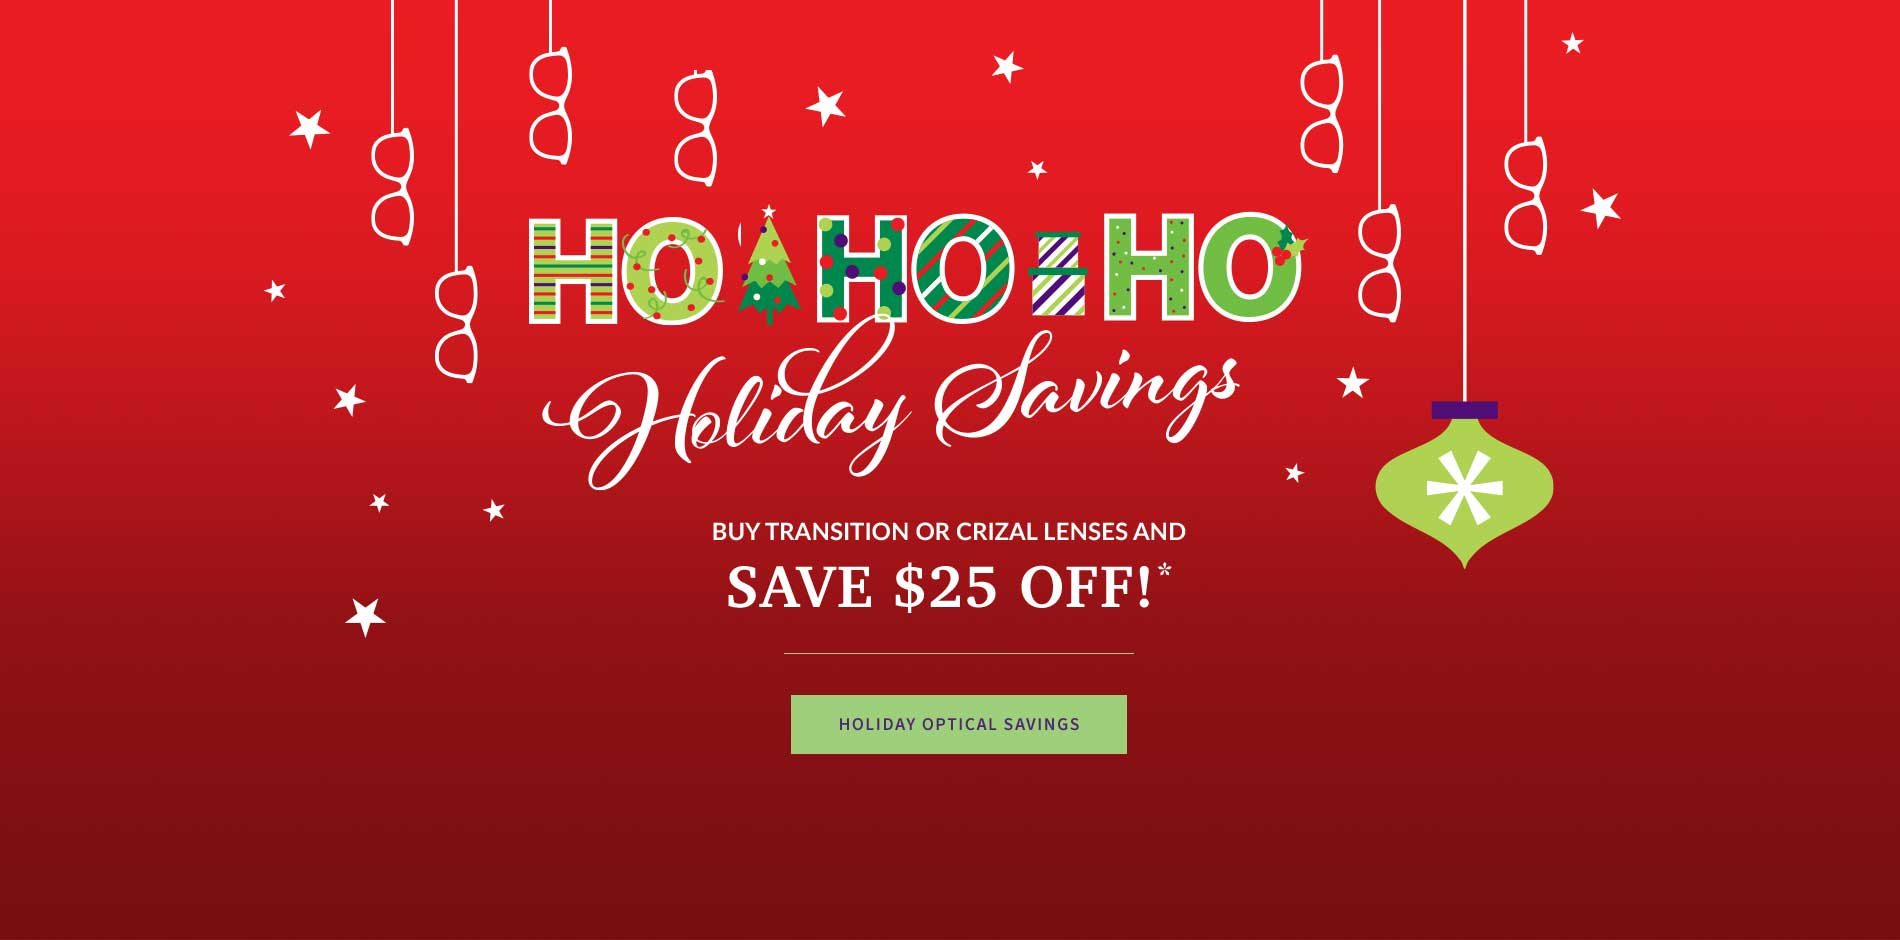 Ho Ho Ho! Holiday Savings. Buy transition or crizal lenses and safe $25 Off!